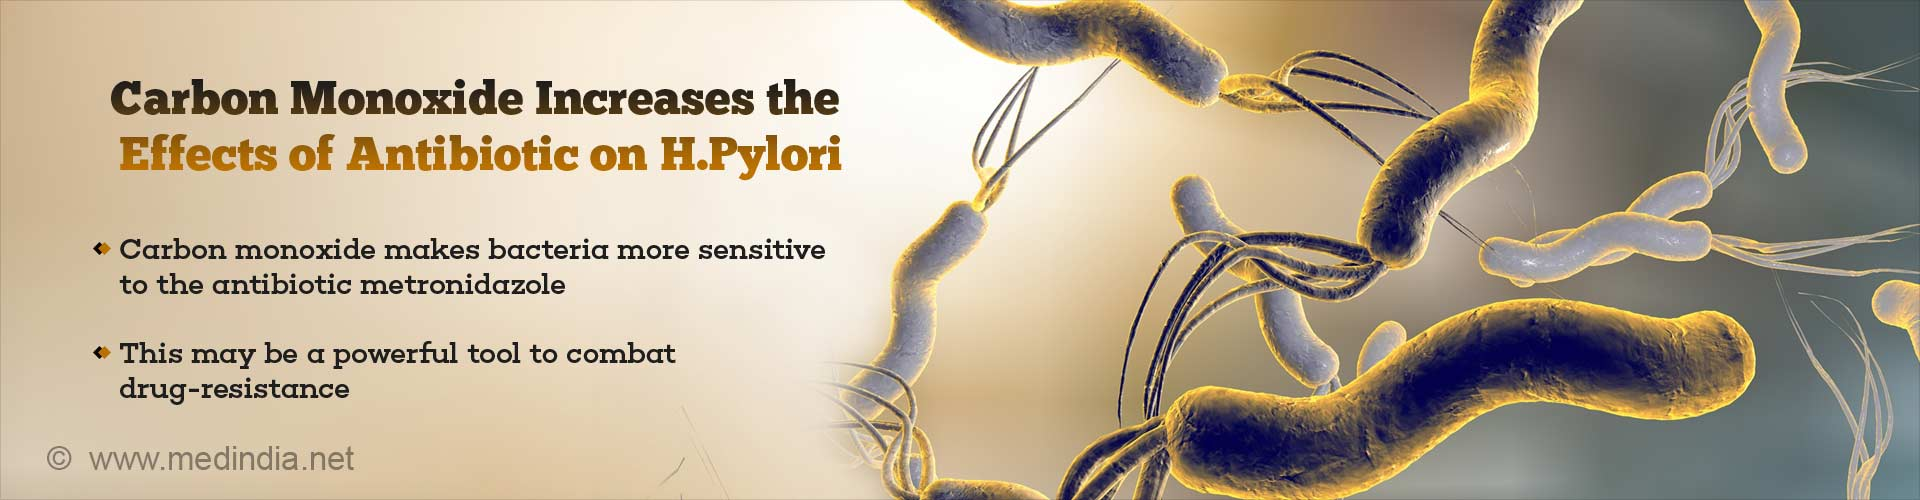 carbon monoxide increases the effects of antibiotic on H.Pylori